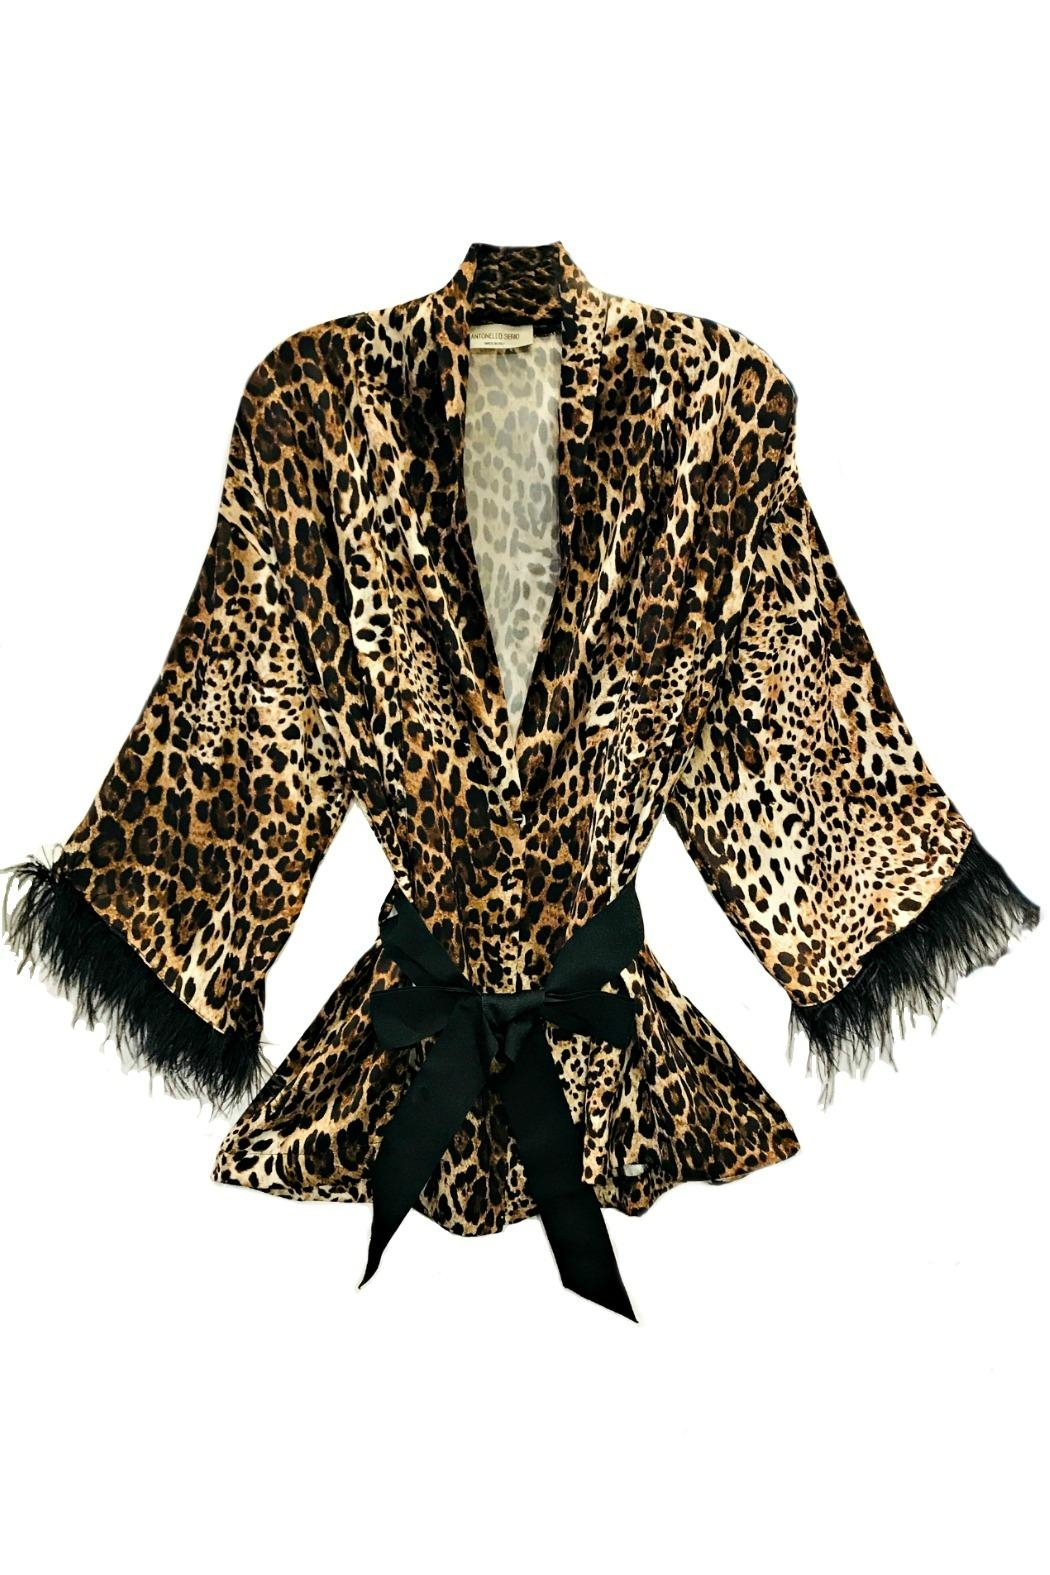 ANTONELLO SERIO Animal Print Cardigan - Main Image